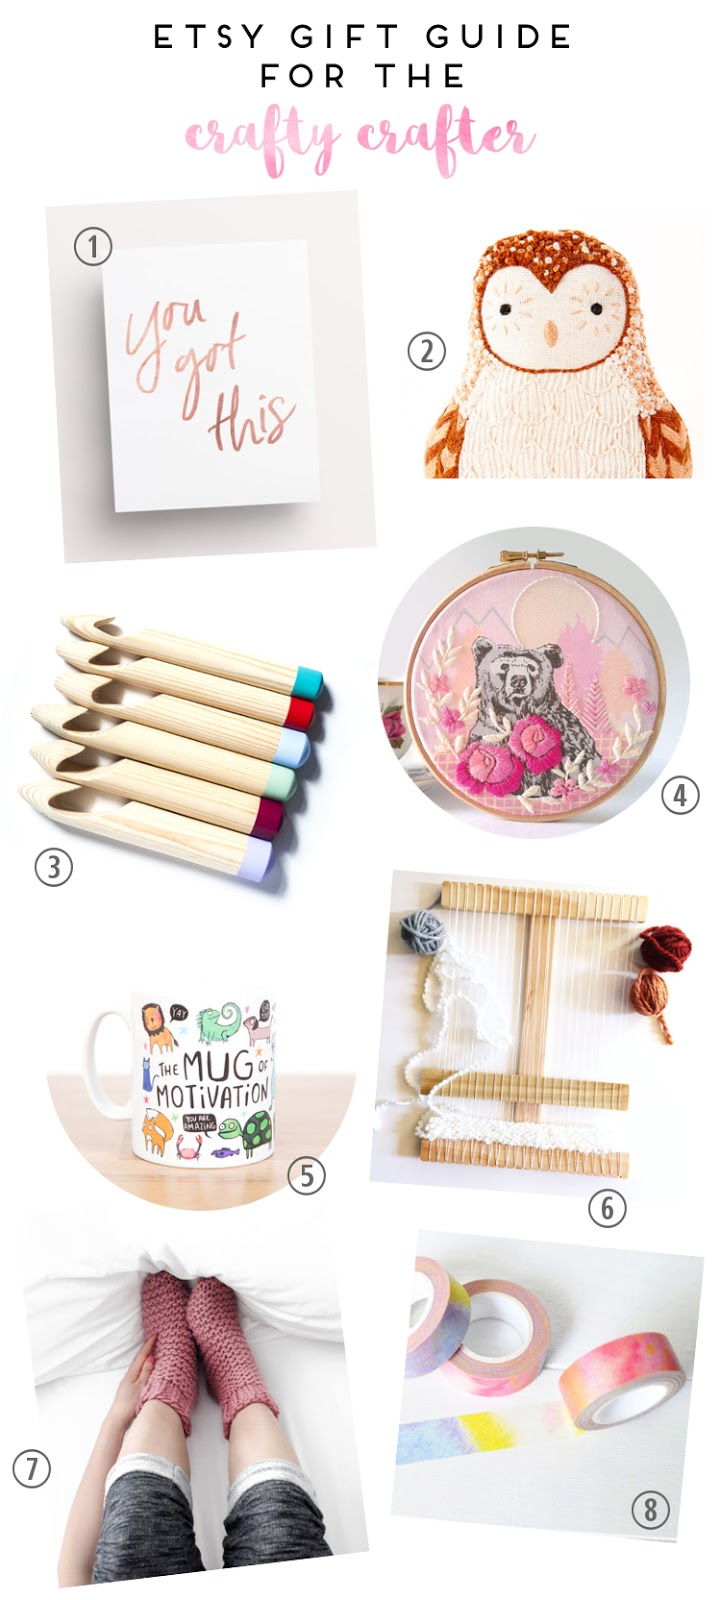 ETSY GIFT GUIDE FOR THE CRAFTY CRAFTER.